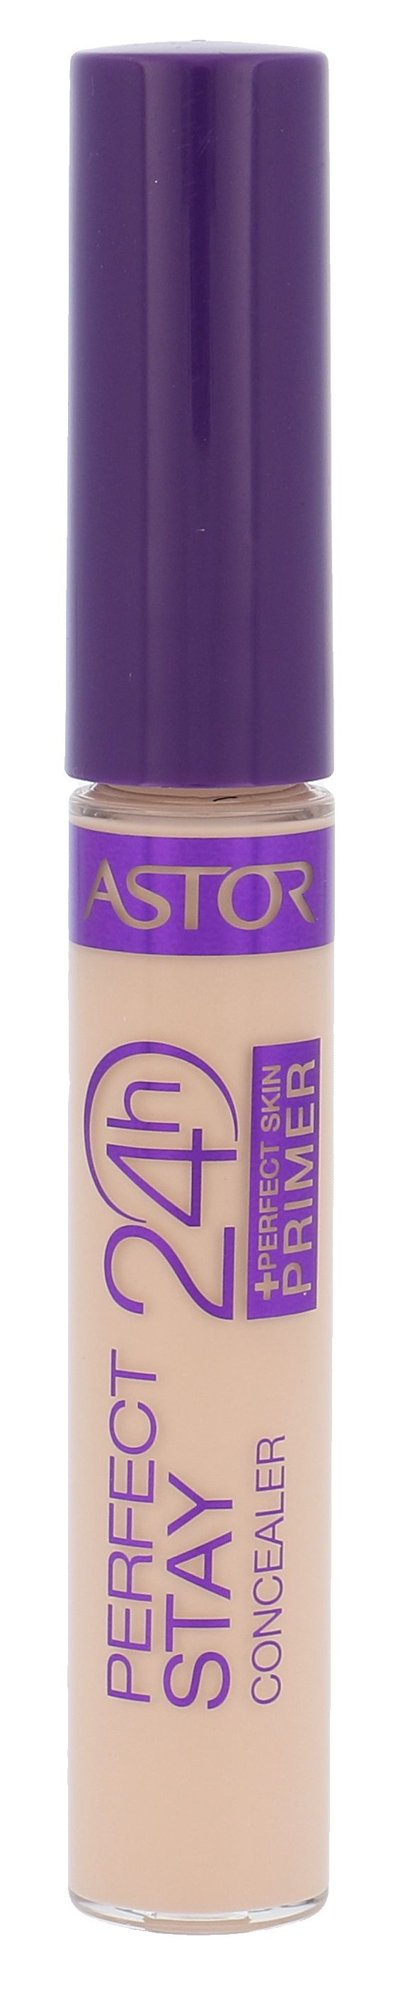 ASTOR Perfect Stay Cosmetic 6,5ml 002 Sand